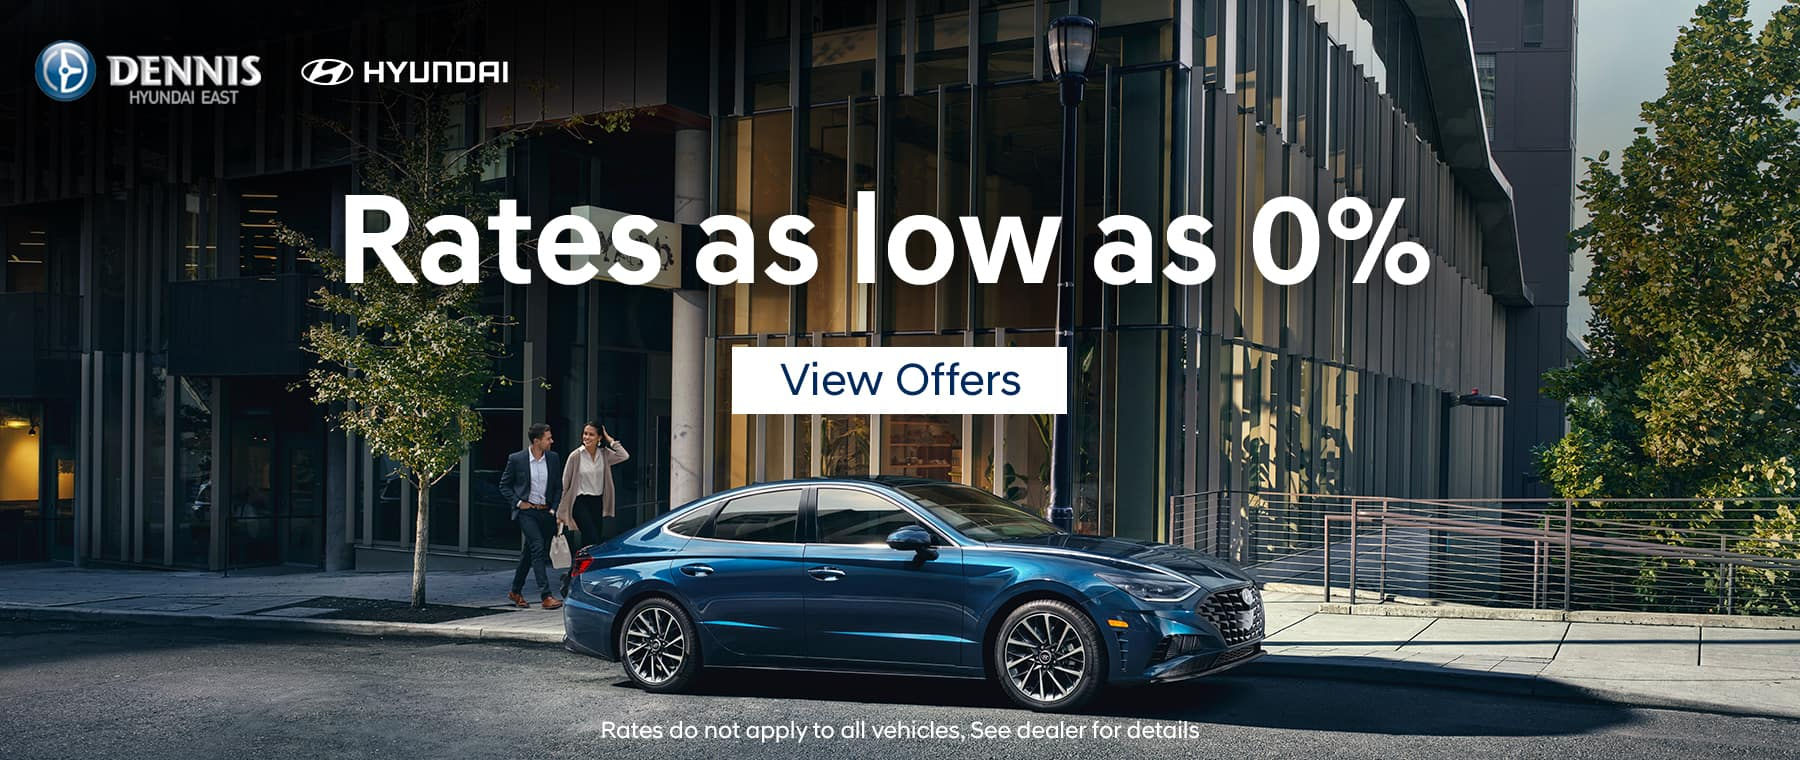 Rates as low as 0% and rebates as high as $1500